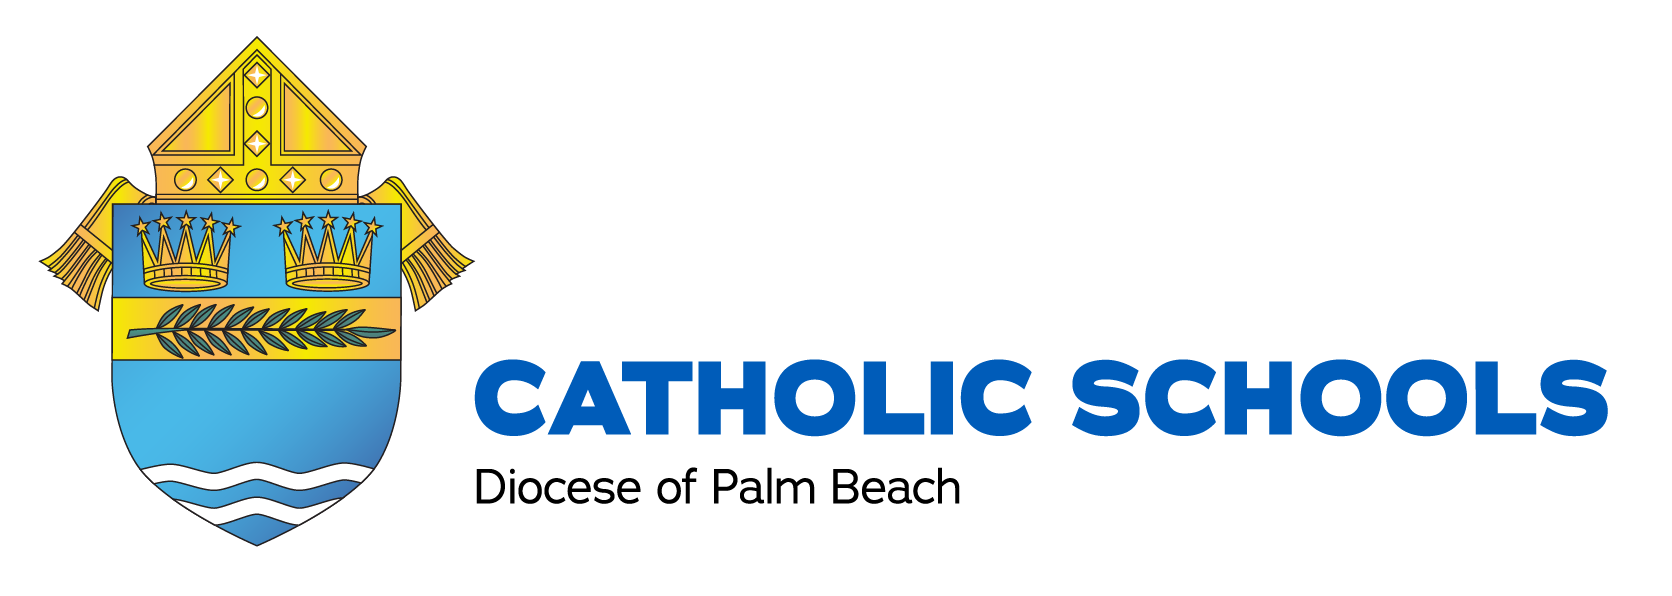 palm-beach-diocese-catholic-schools-logo-with-text